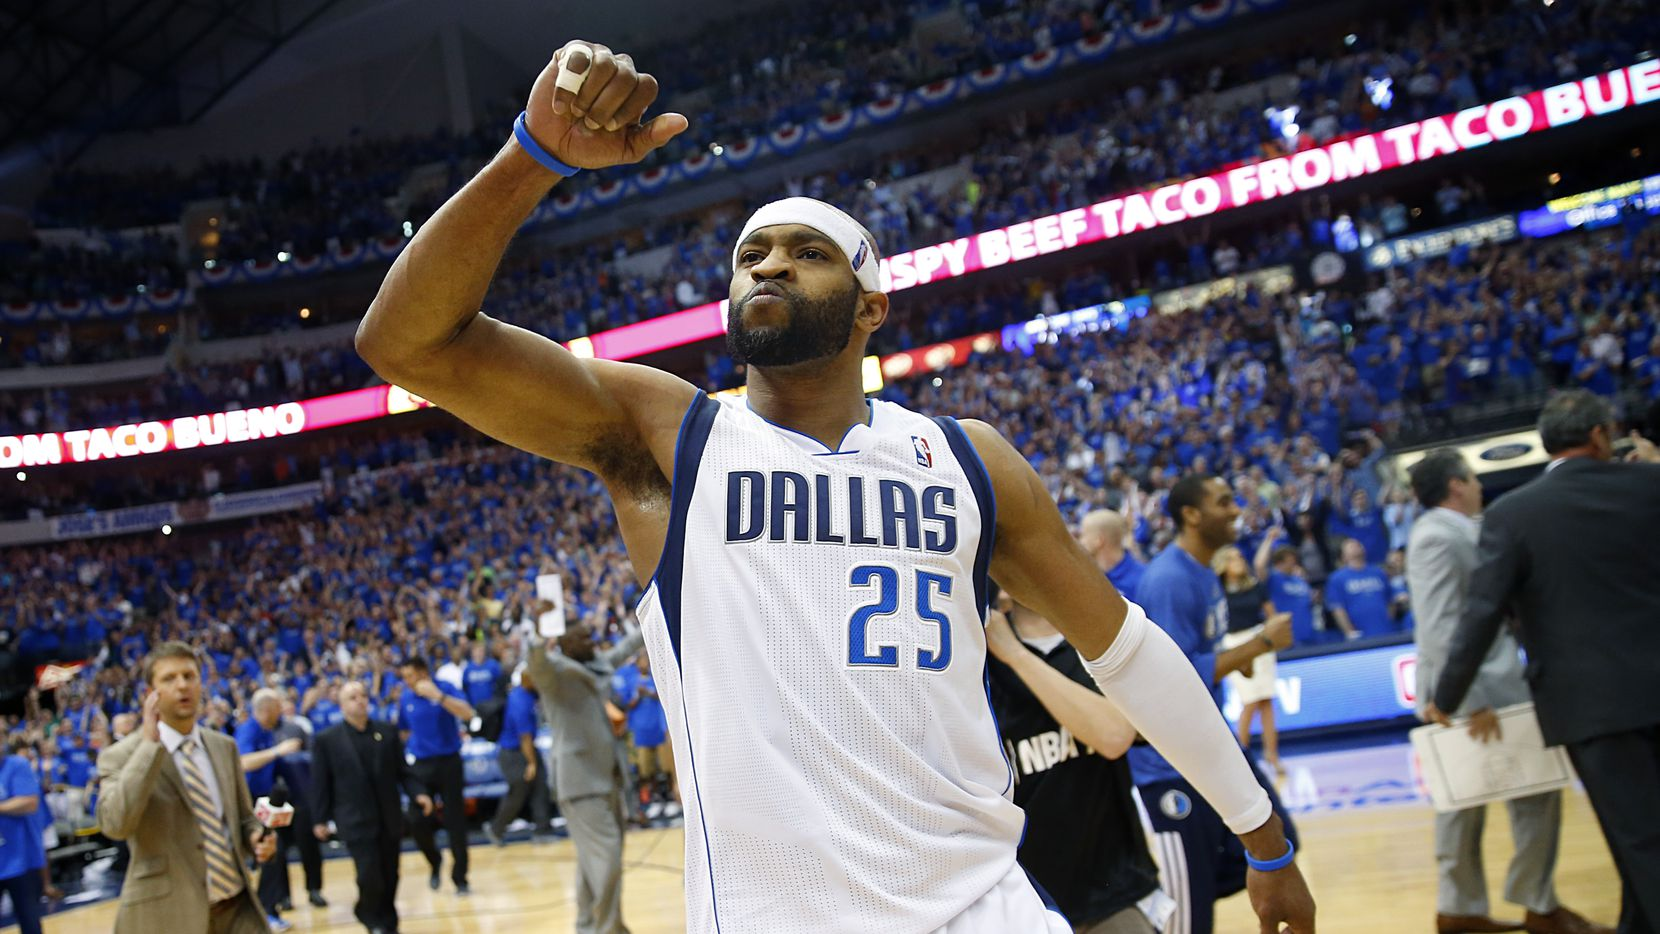 Dallas Mavericks guard Vince Carter (25) beats his chest and acknowledges the cheers from the crowd as he walks off the court following his game winning three pointer against the San Antonio Spurs in1 the NBA Western Conference Quarterfinals Game 3 at the American Airlines Center in Dallas, Texas, Saturday, April 26, 2014.